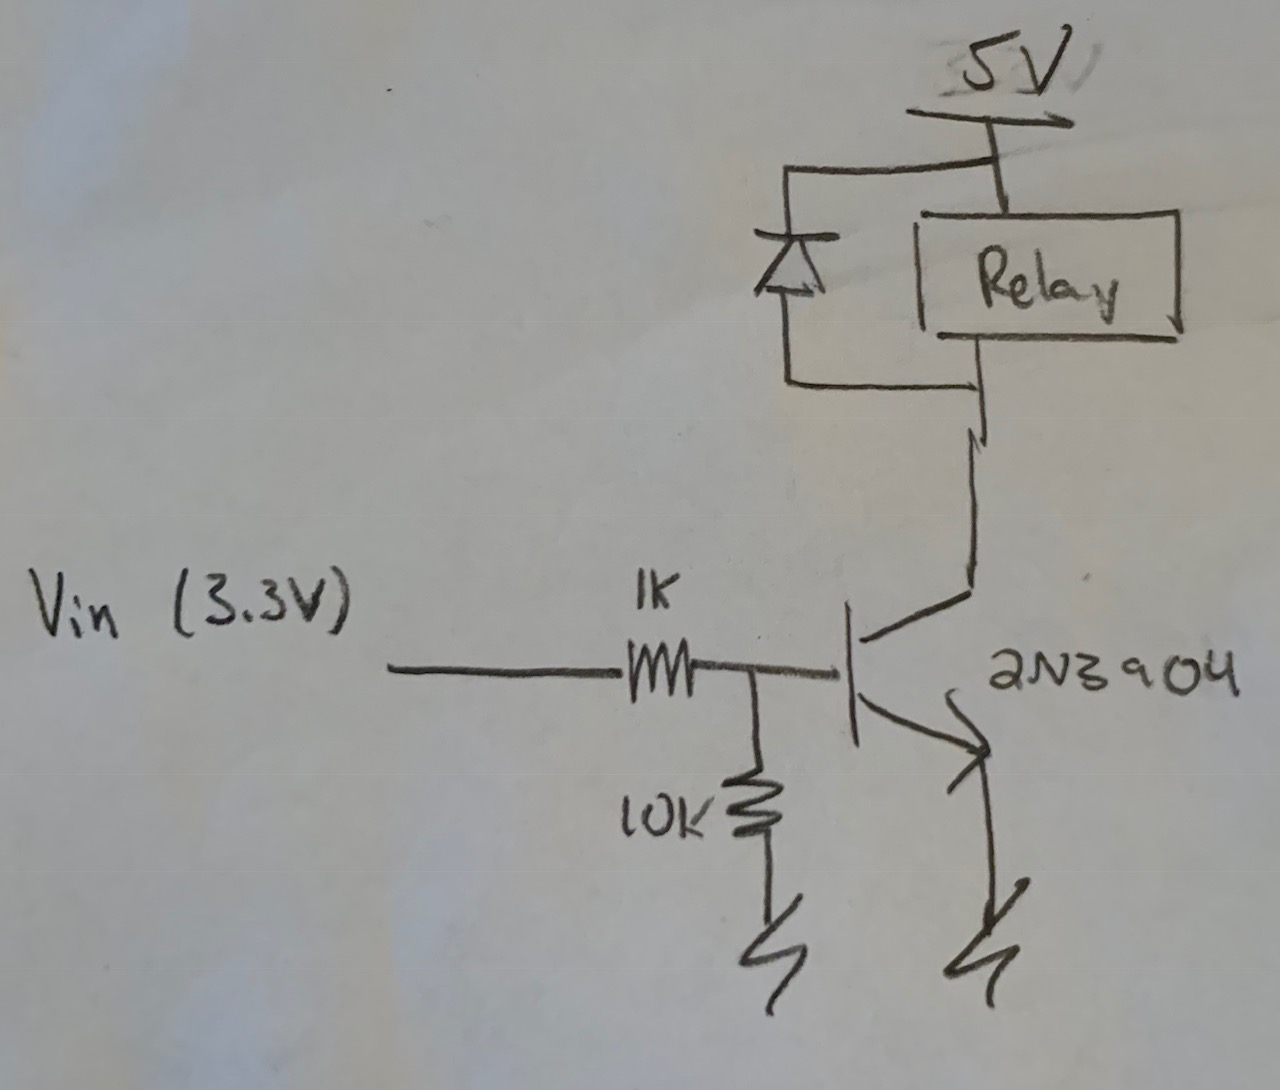 Ice Cube Latching Relay Diagram | Wiring Diagram Ice Cube Relays Wiring Diagram V on